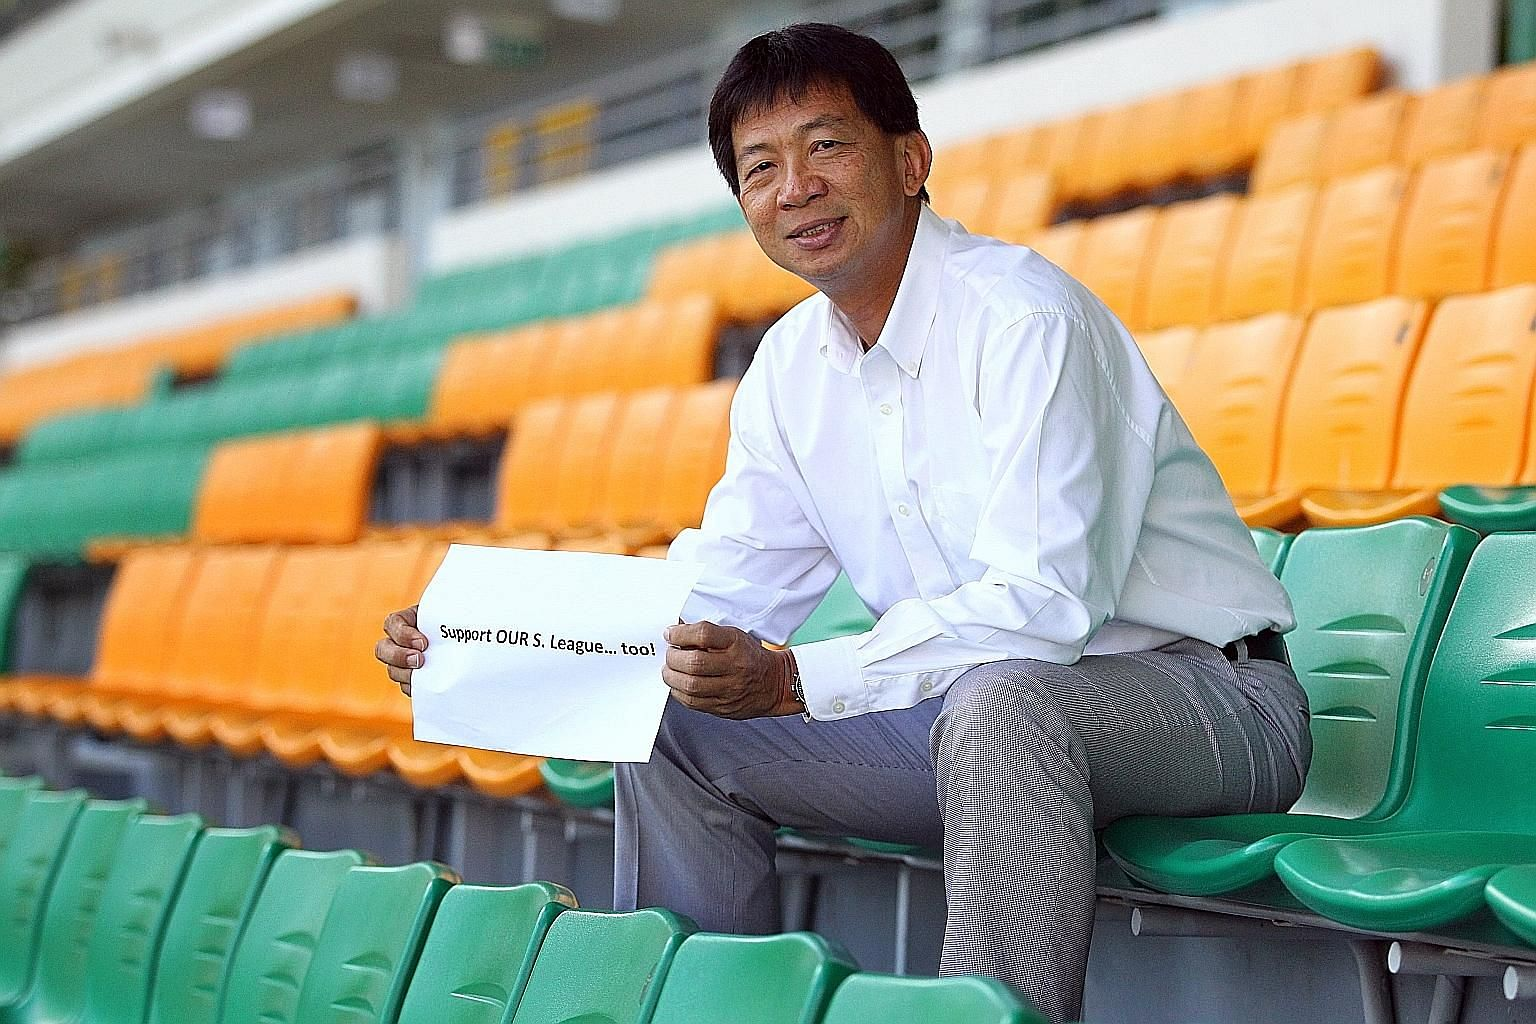 S-League CEO Lim Chin will leave the organisation at the end of March after five years and three months. As for operational matters, Kok Wai Leong, the S-League's director of operations, will hold the fort.